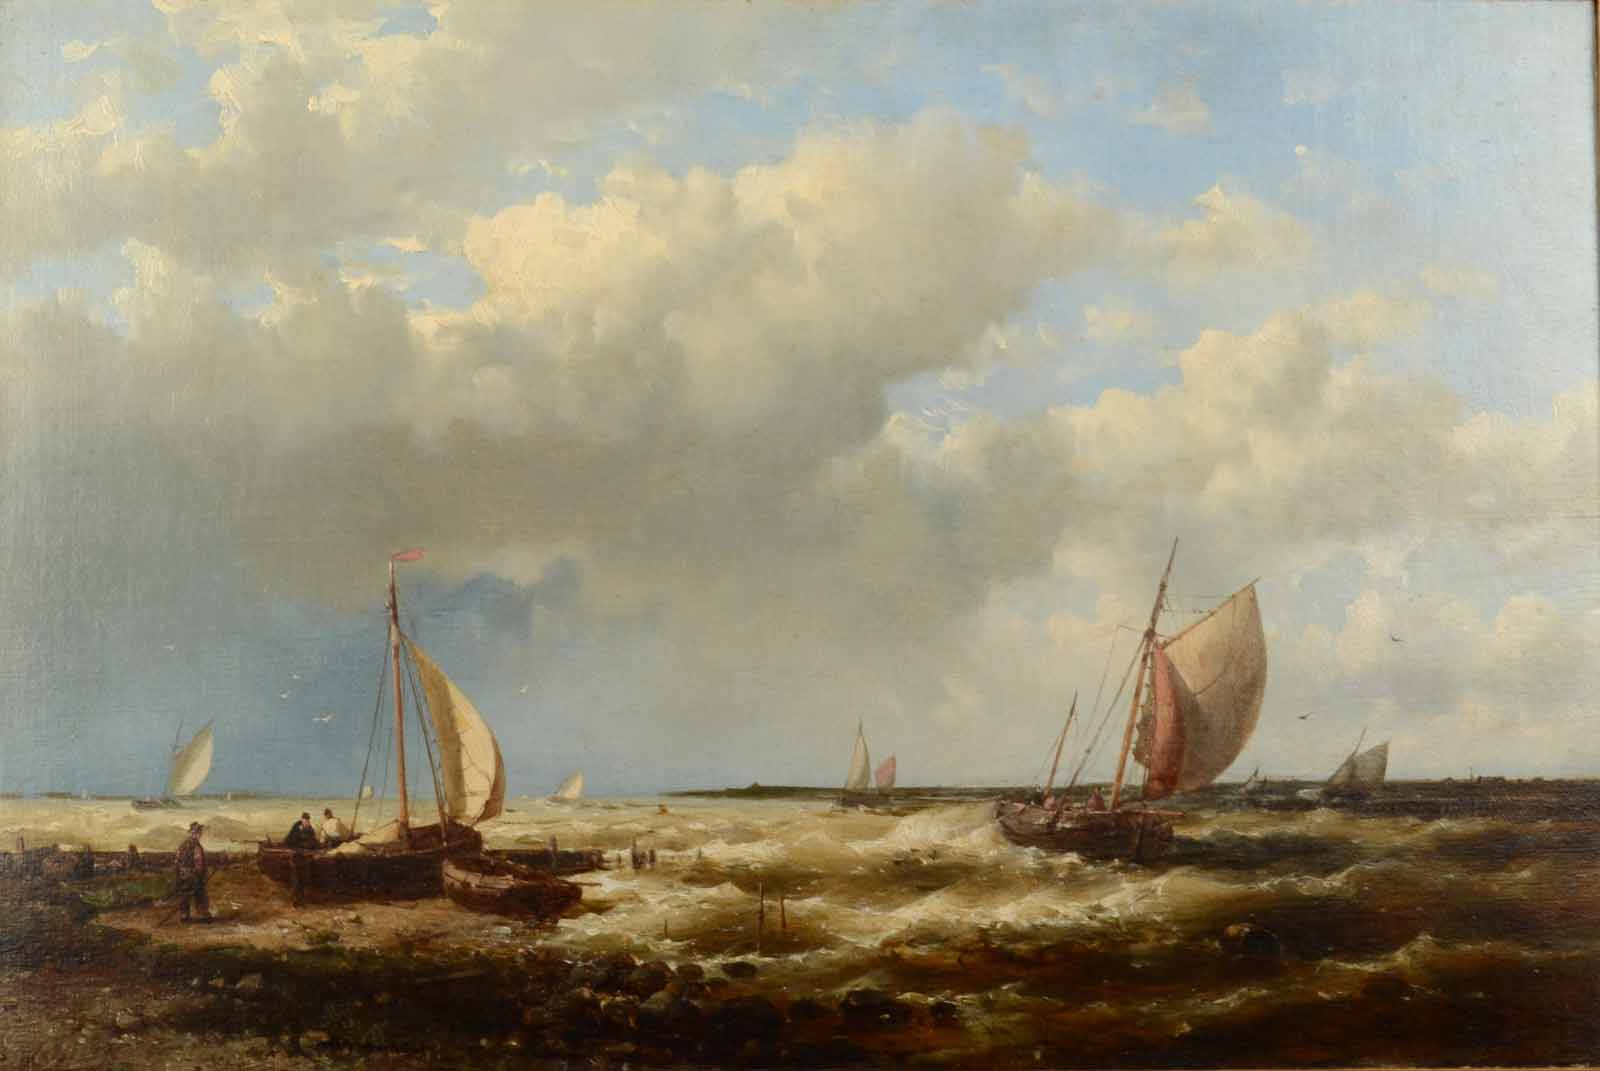 Abraham Hulk, off the dutch coast